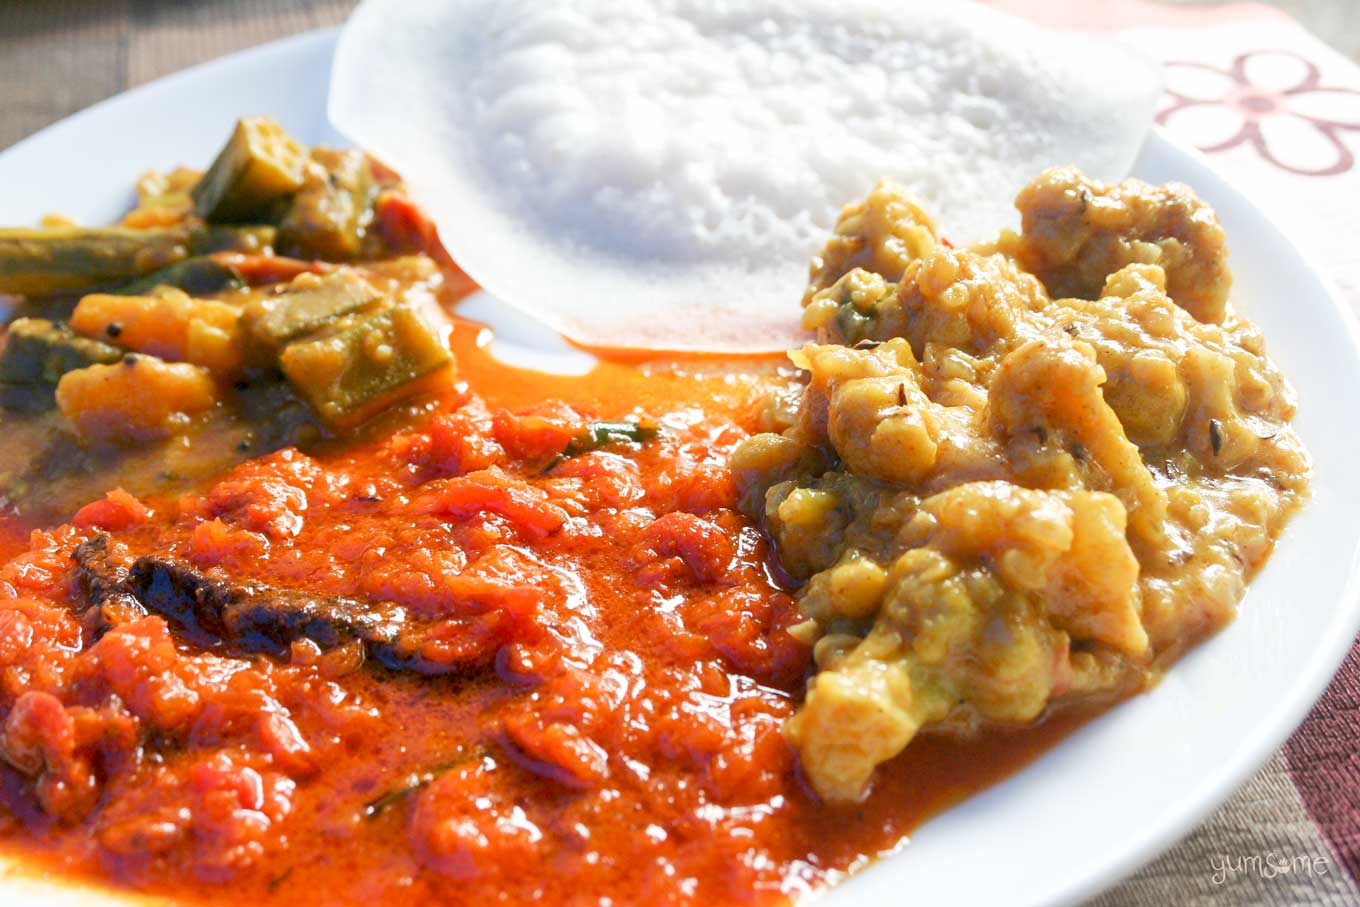 Three vegetarian curries and an appam on a white plate.